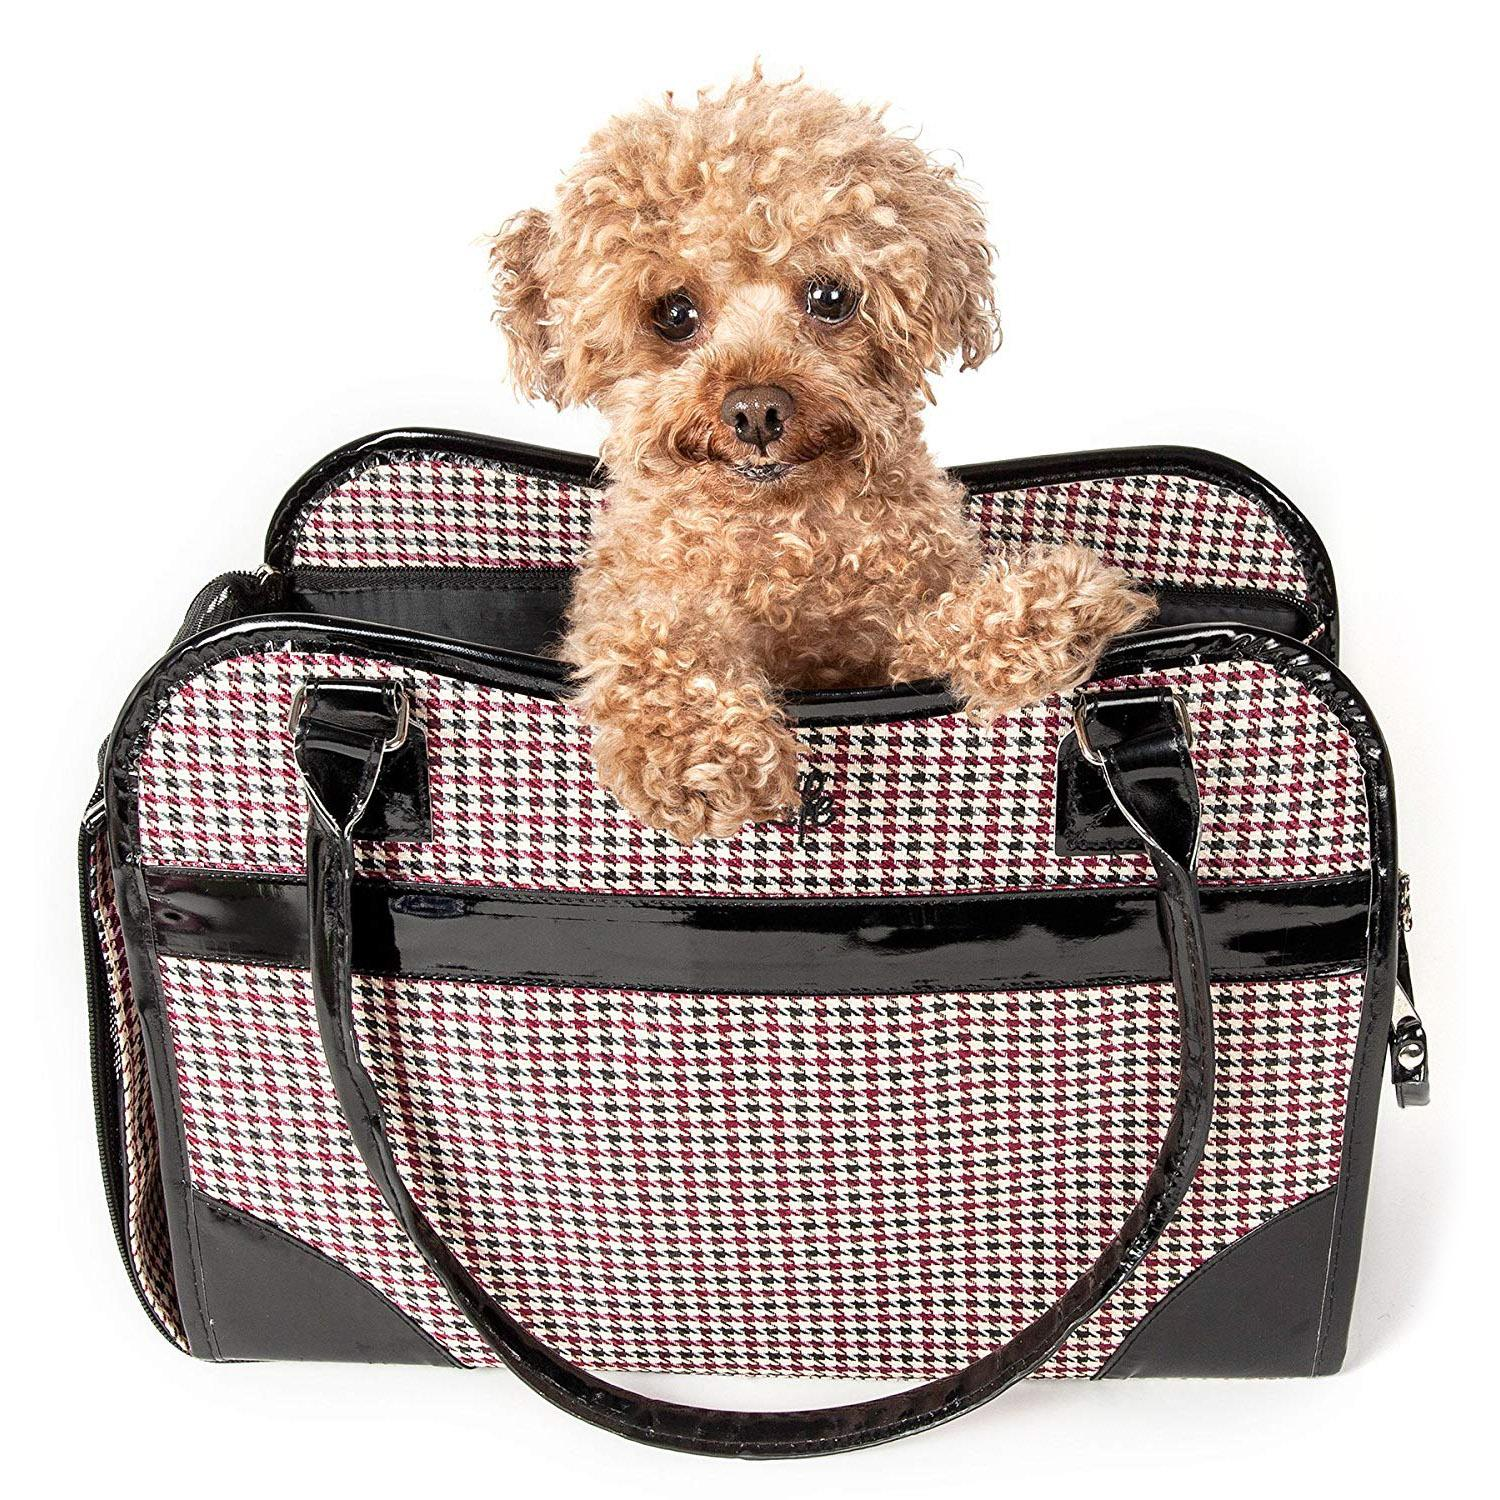 Pet Life 'Exquisite' Airline-Approved Designer Travel Dog Carrier - Houndstooth Multi